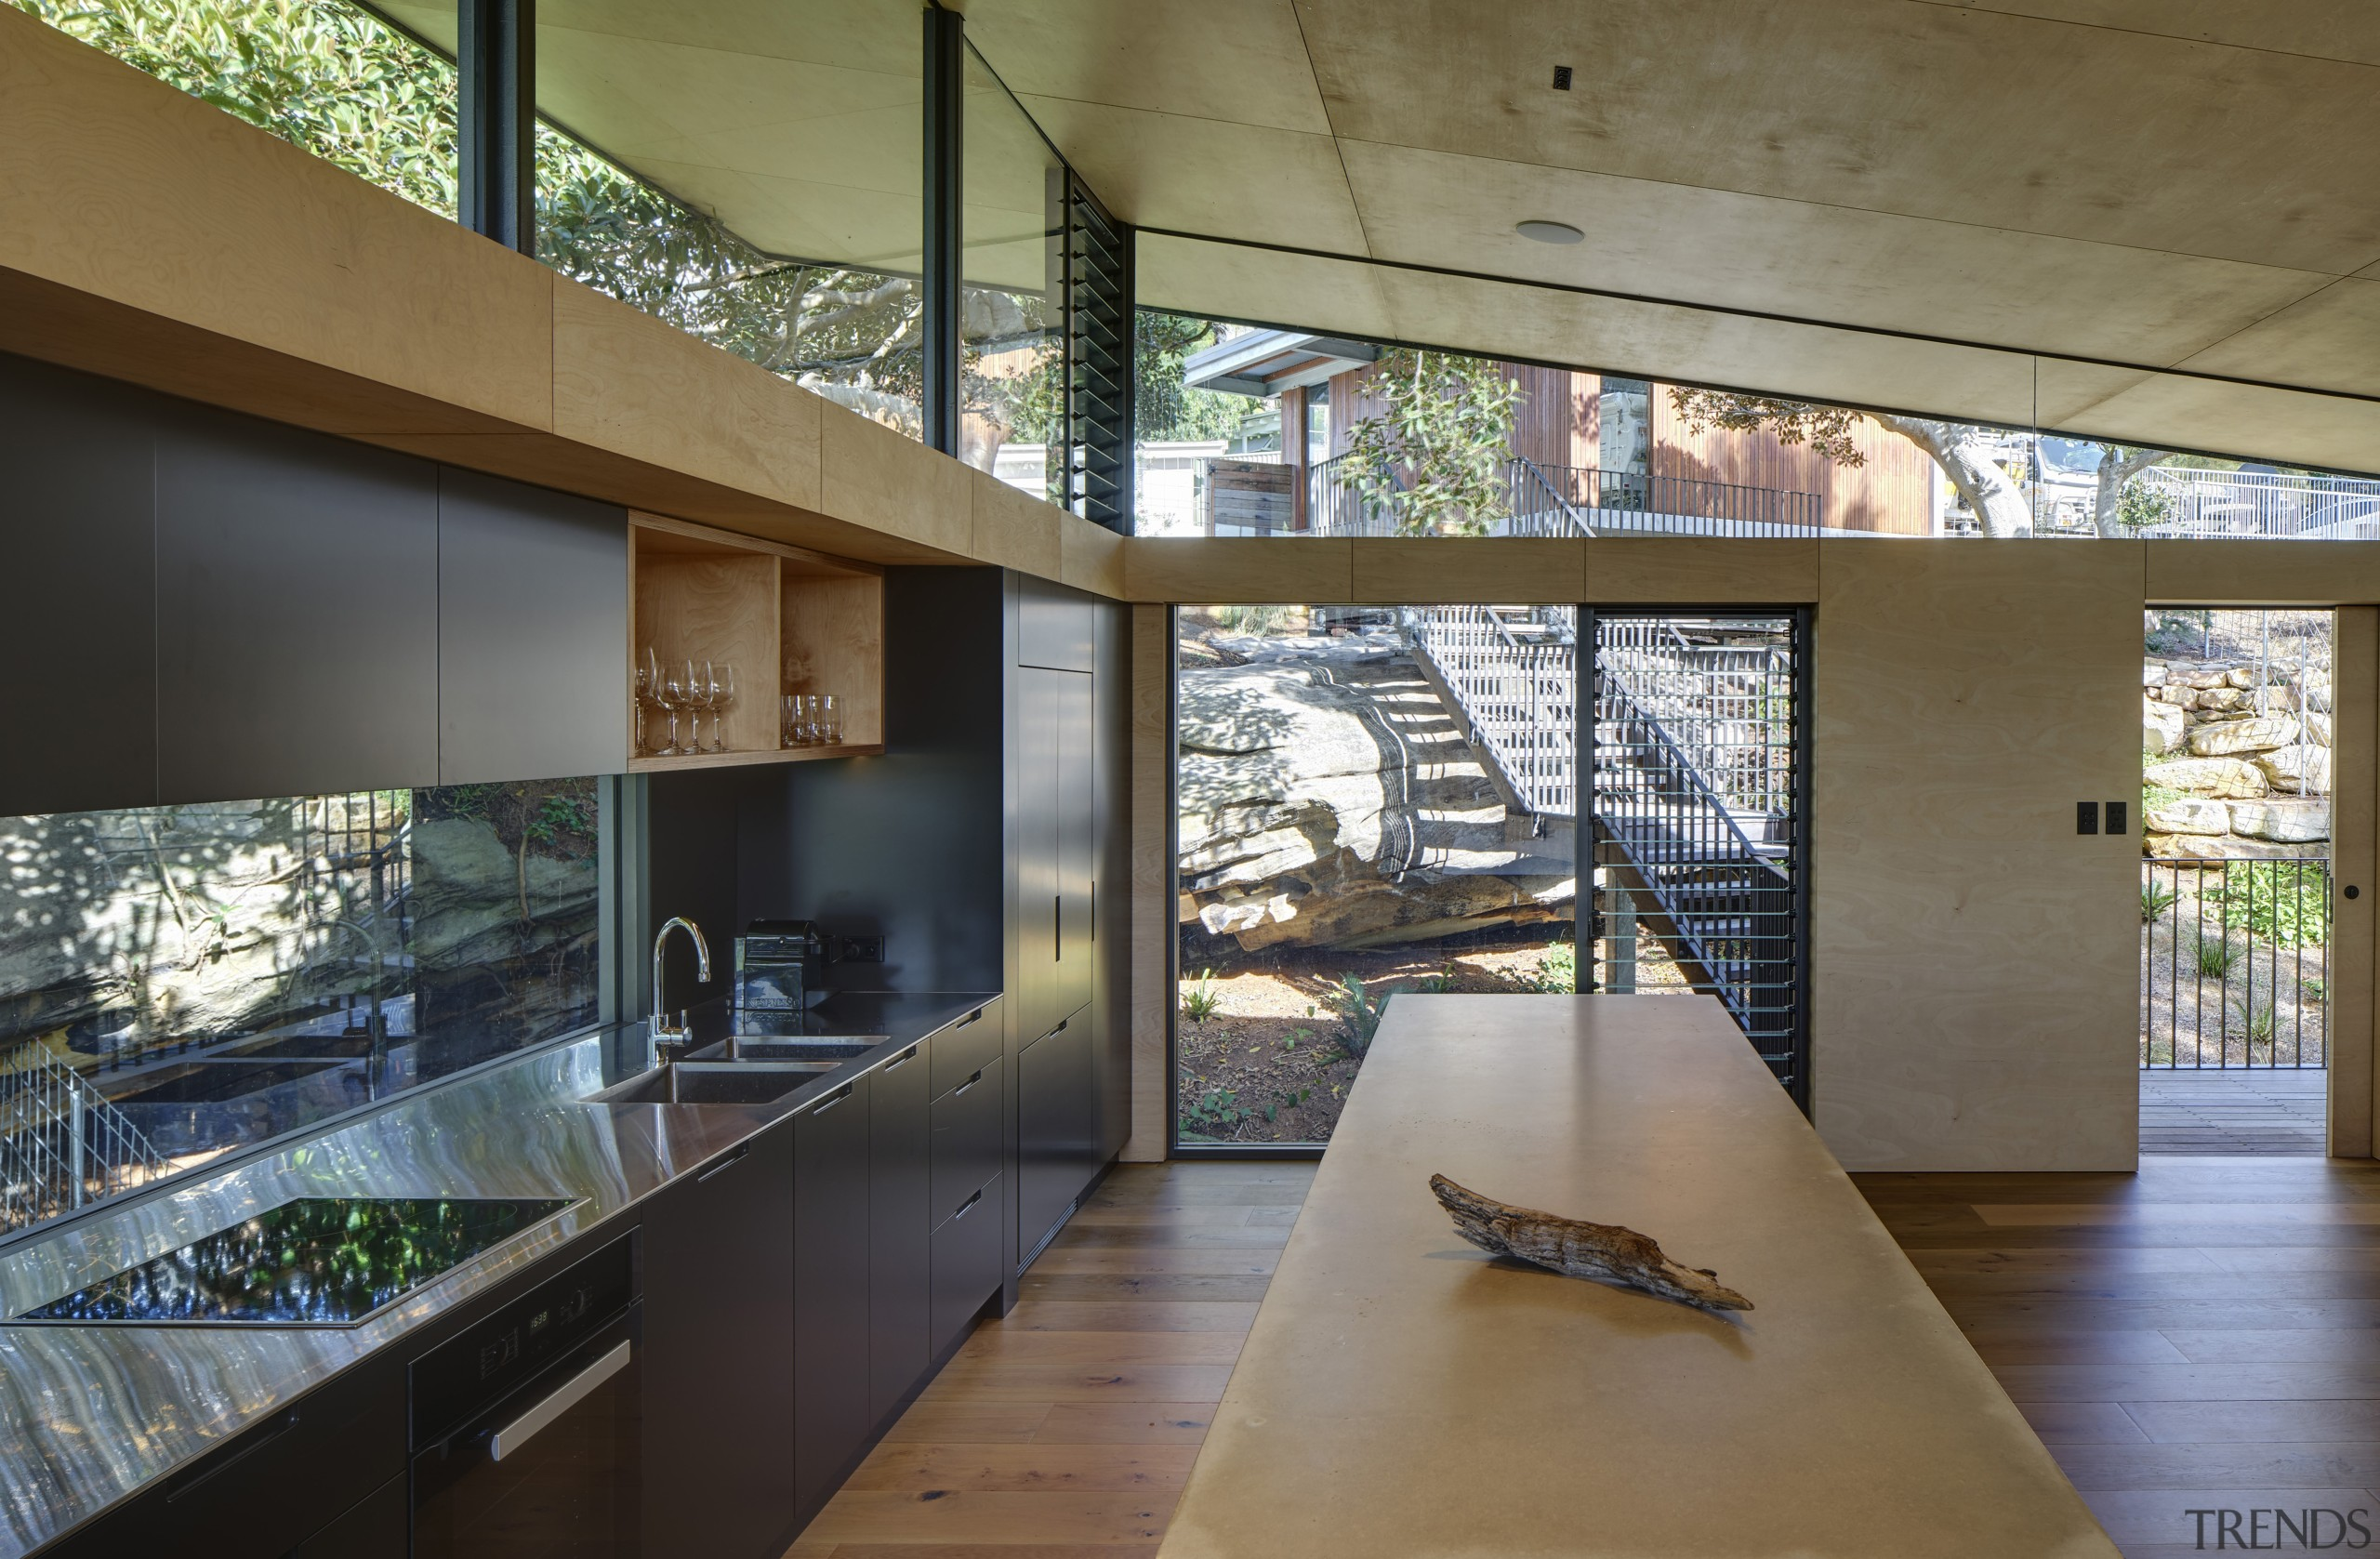 The kitchen, with window splashback, opens up to